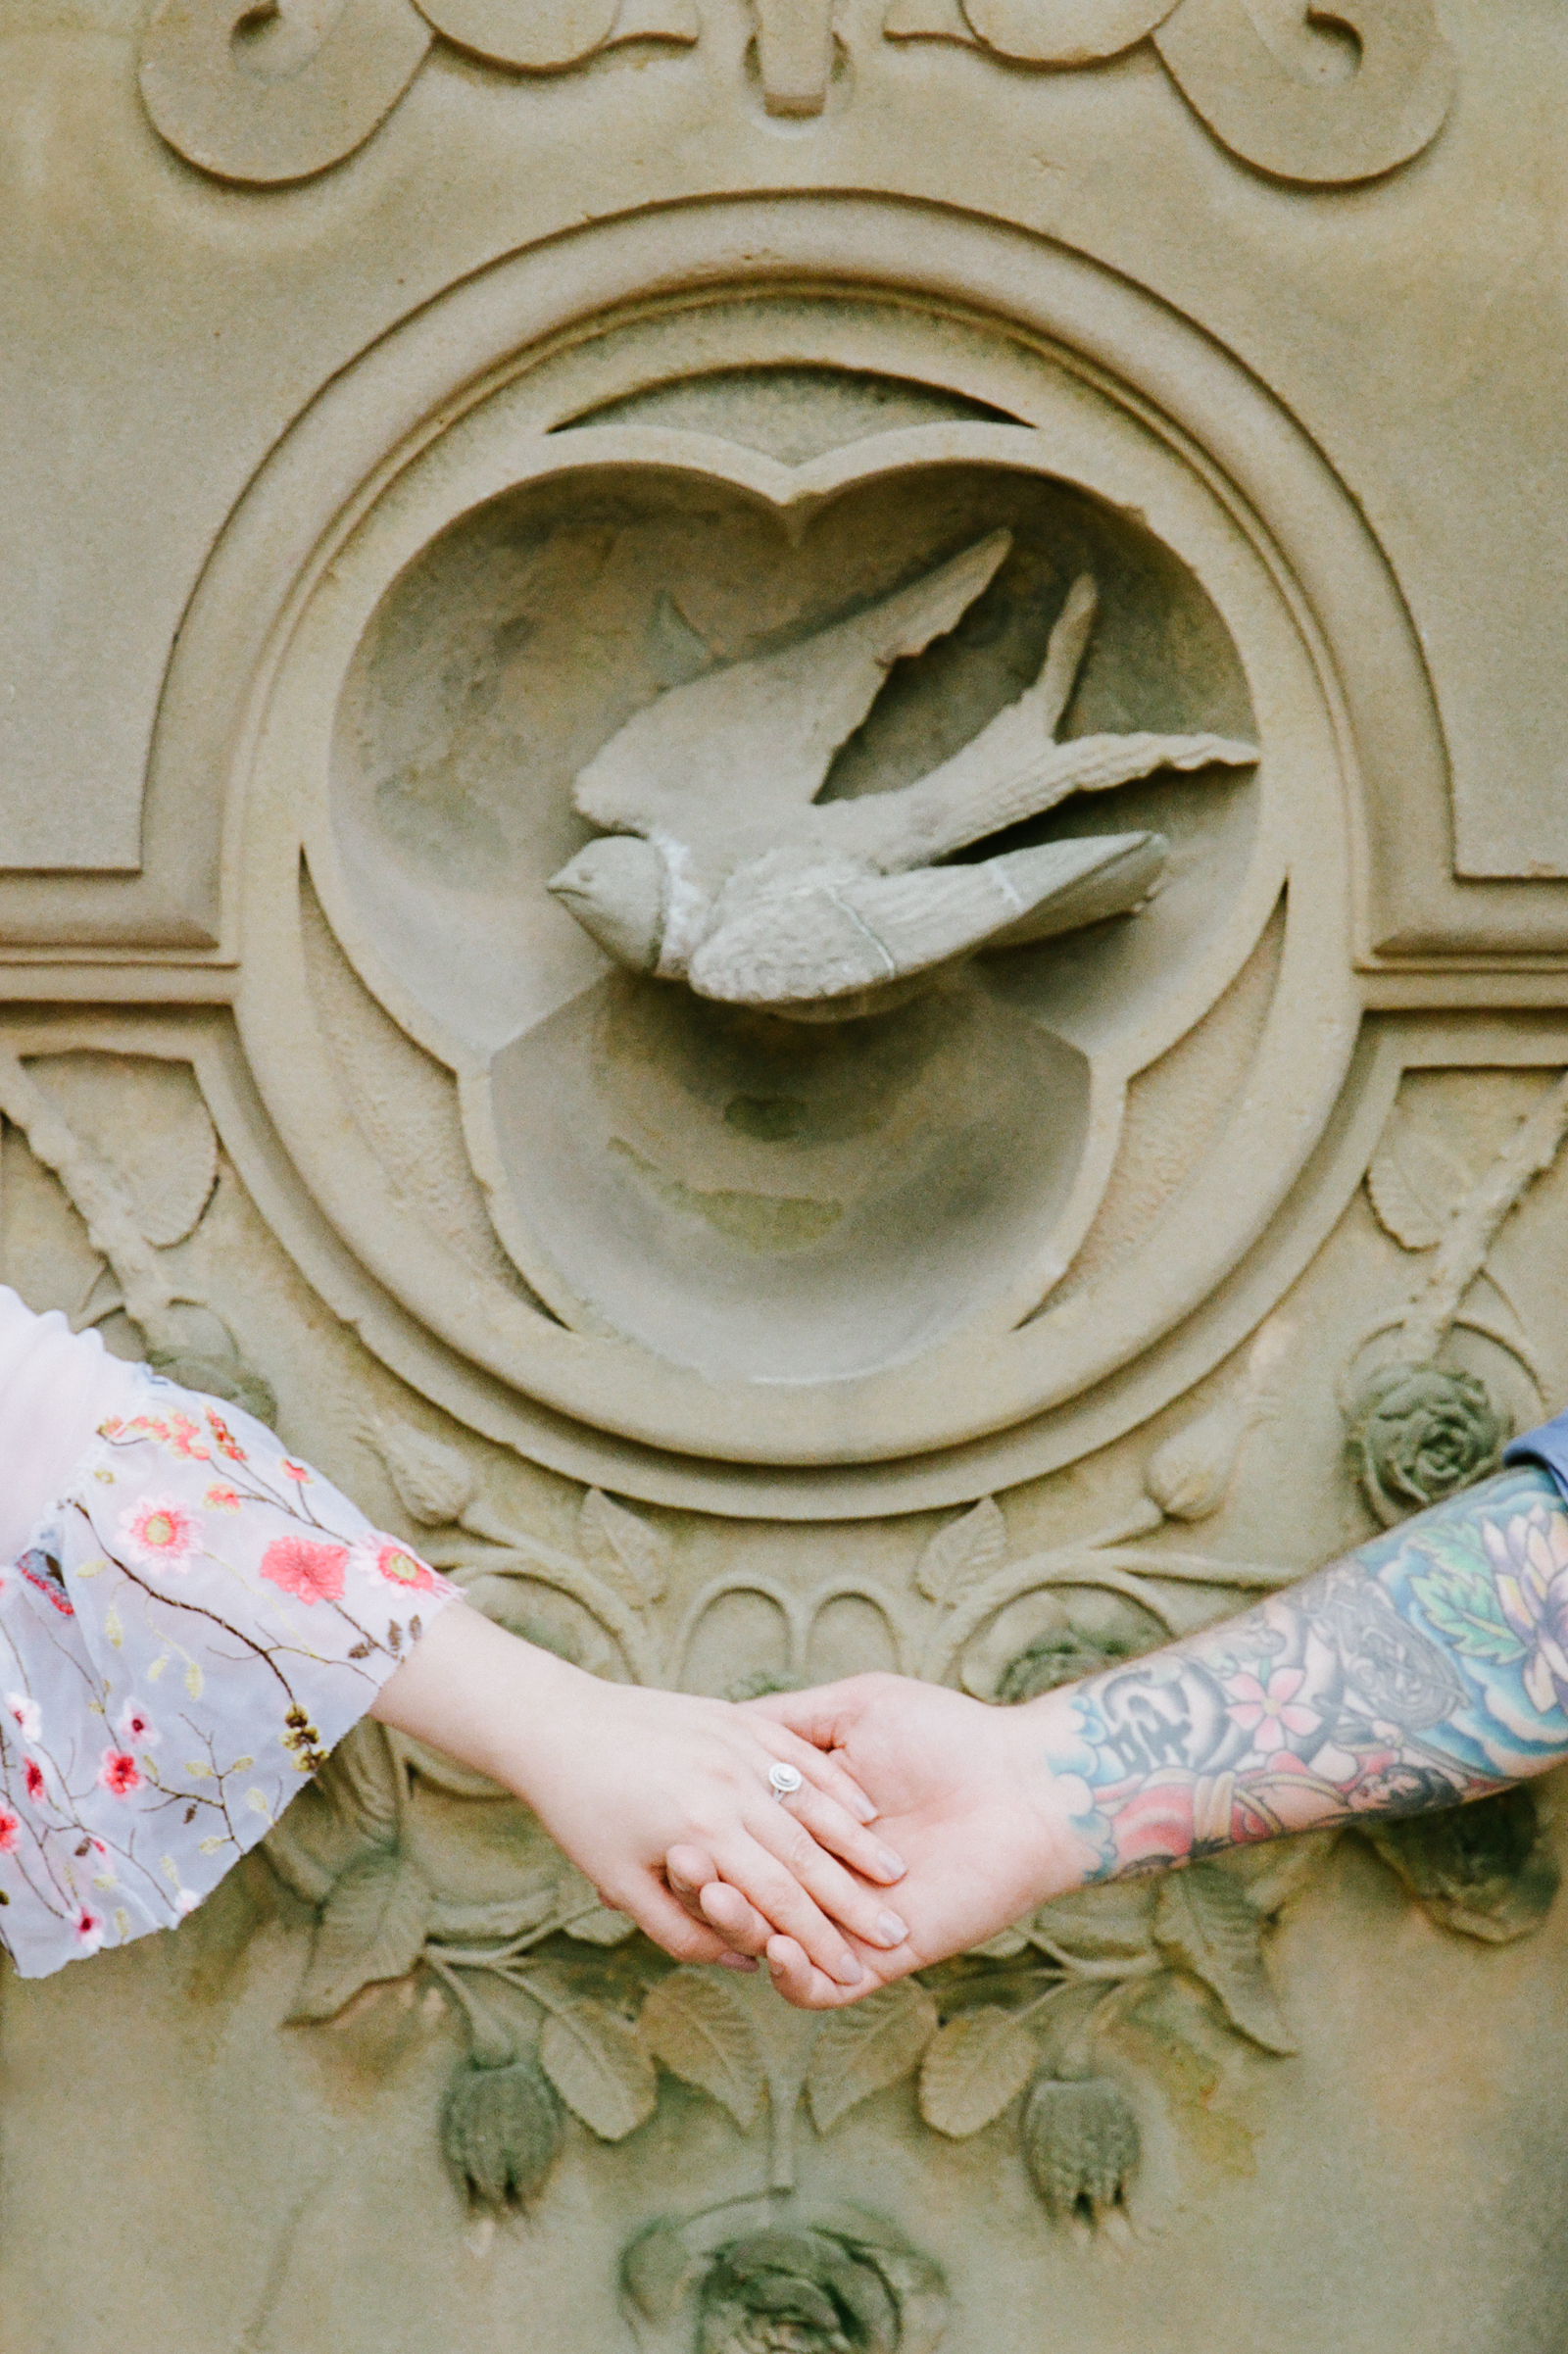 Central-Park-NYC-Engagement-Session-film-photography-34.jpg